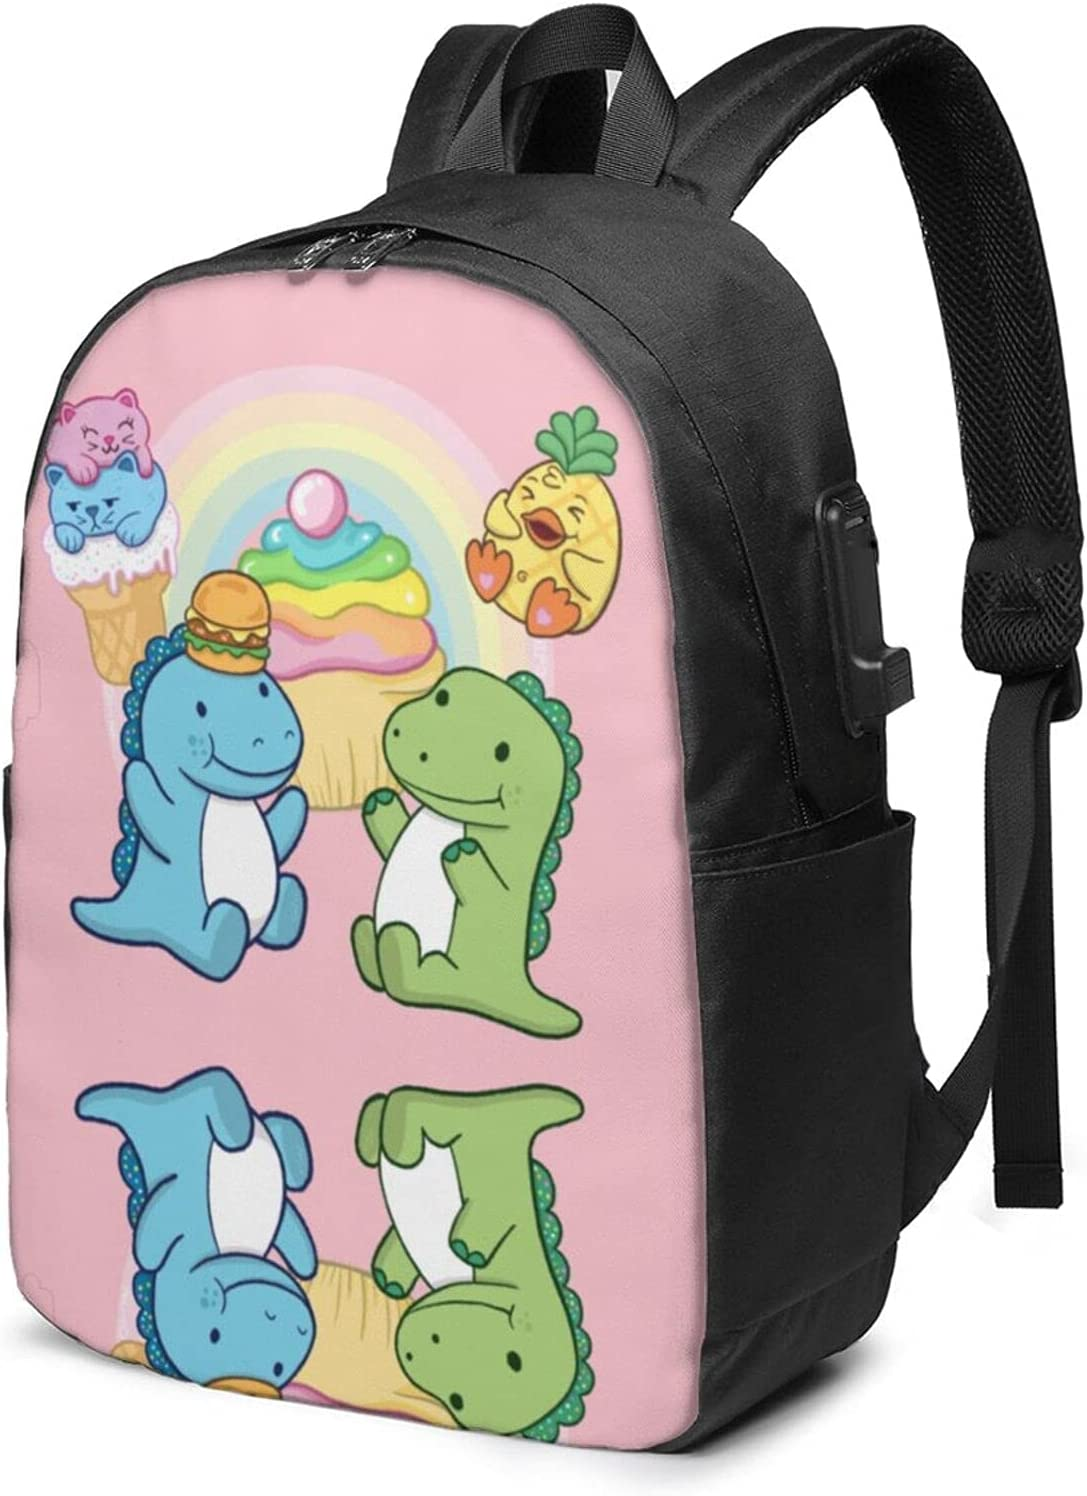 Cousin Derp and Pickle 11 Laptop Backpack Knapsack Travel Bag with USB Charger Port 17 Inch